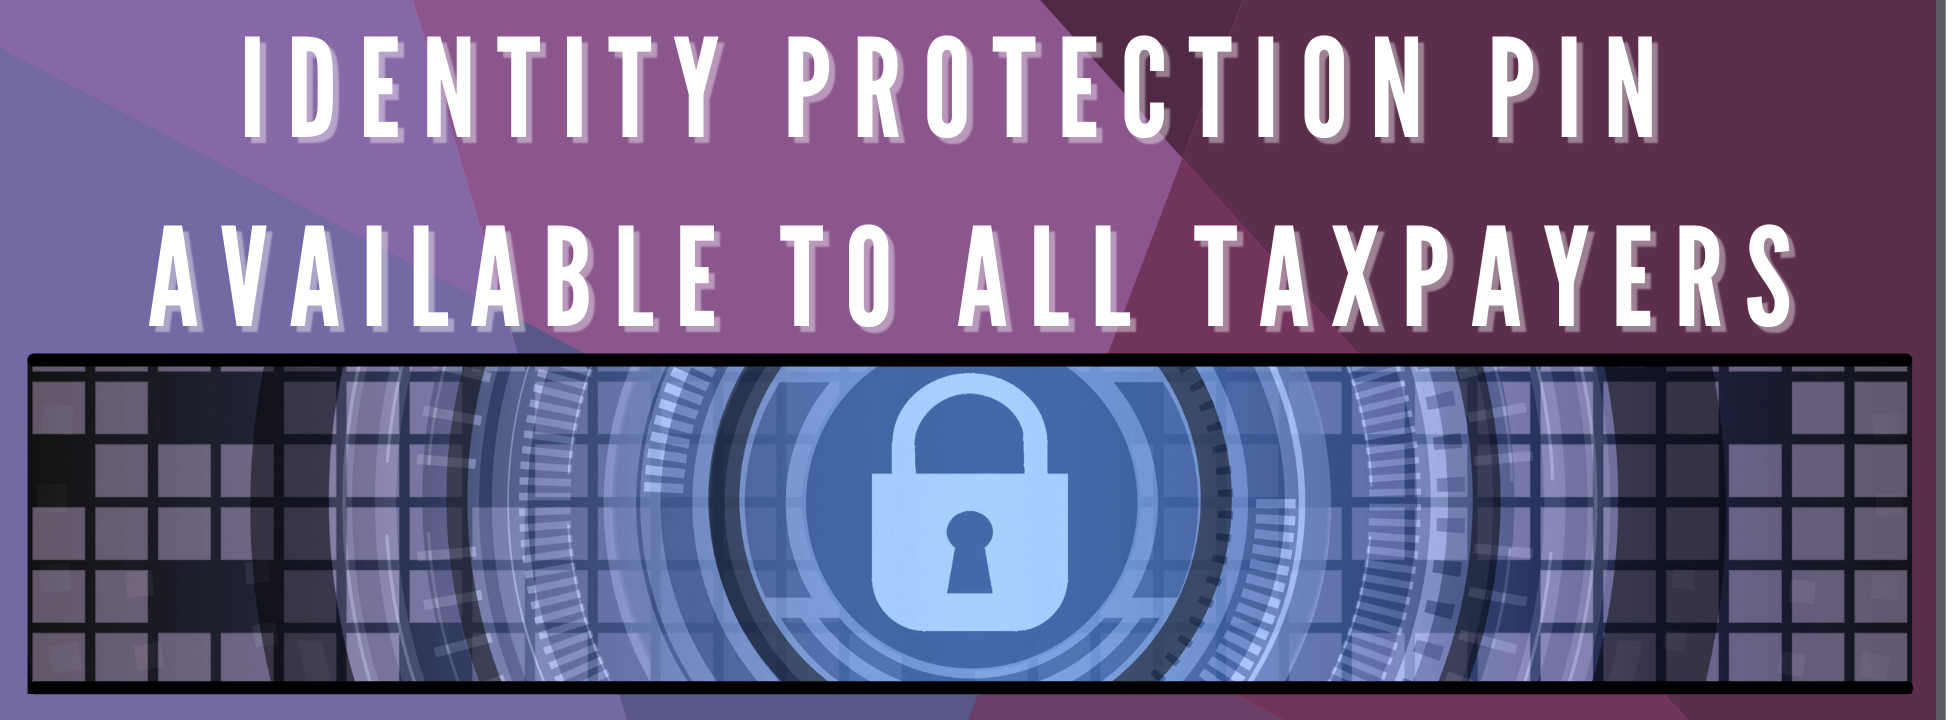 Identity Protection Pin Available to All Taxpayers